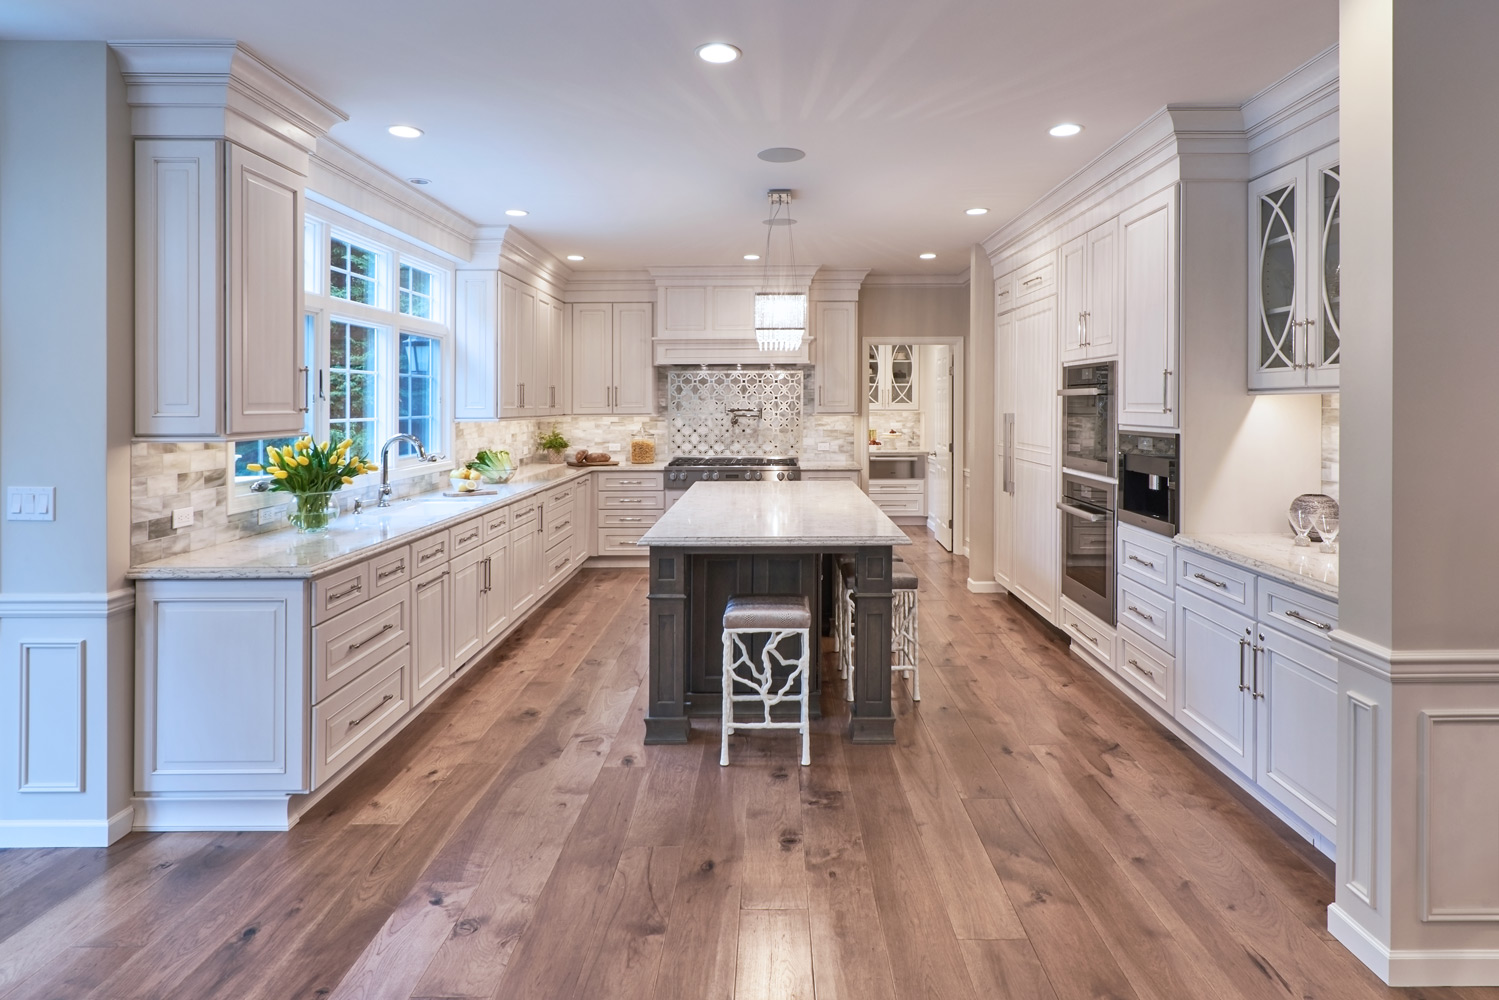 Bellevue Estate Kitchen Interior Design